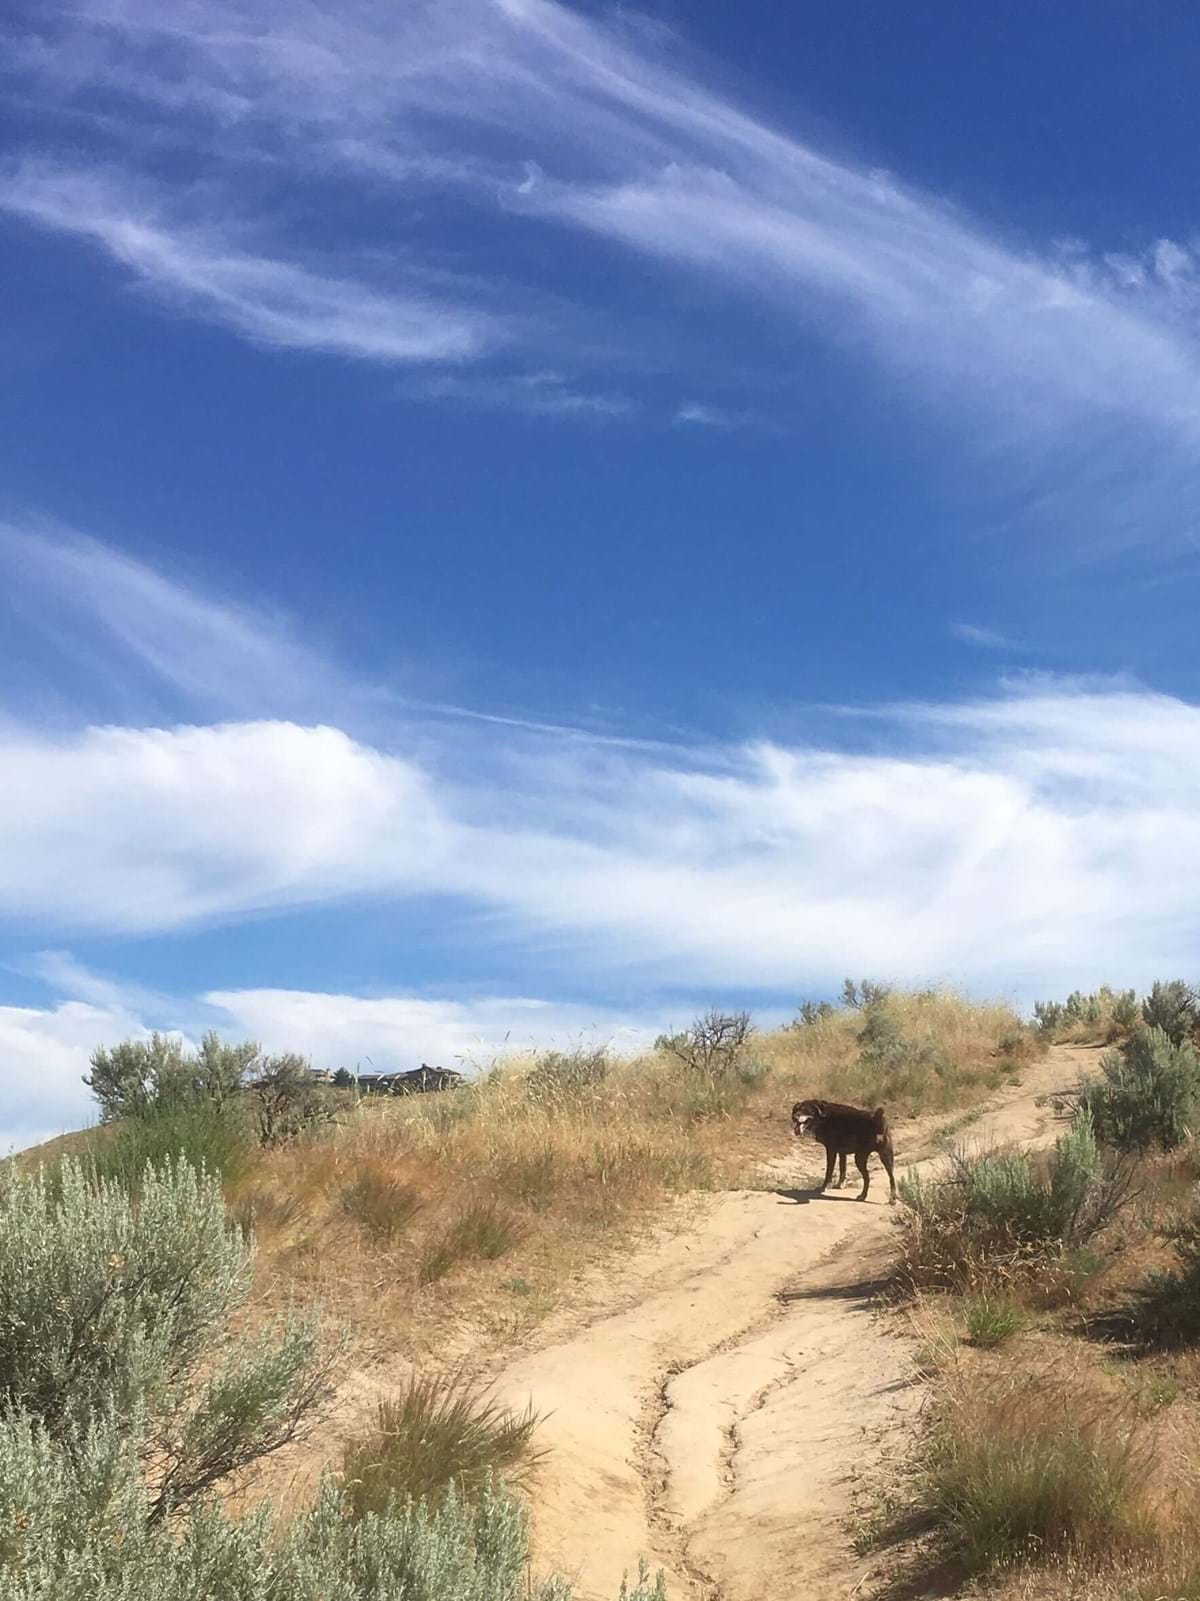 Dog on a dirt trail situated up hill with bright blue sky and grass along the side